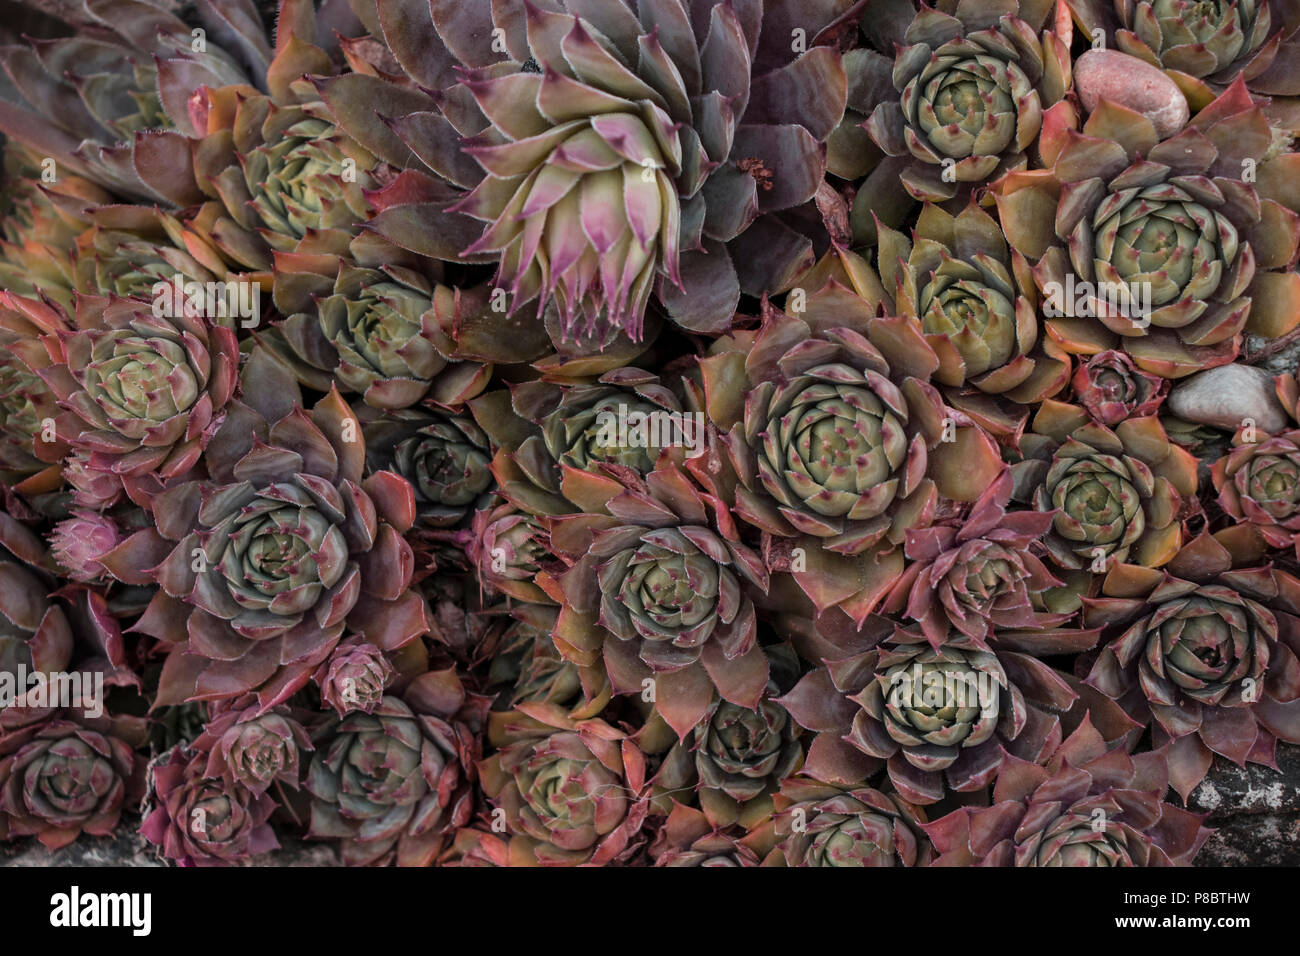 many reddish succulents - Stock Image